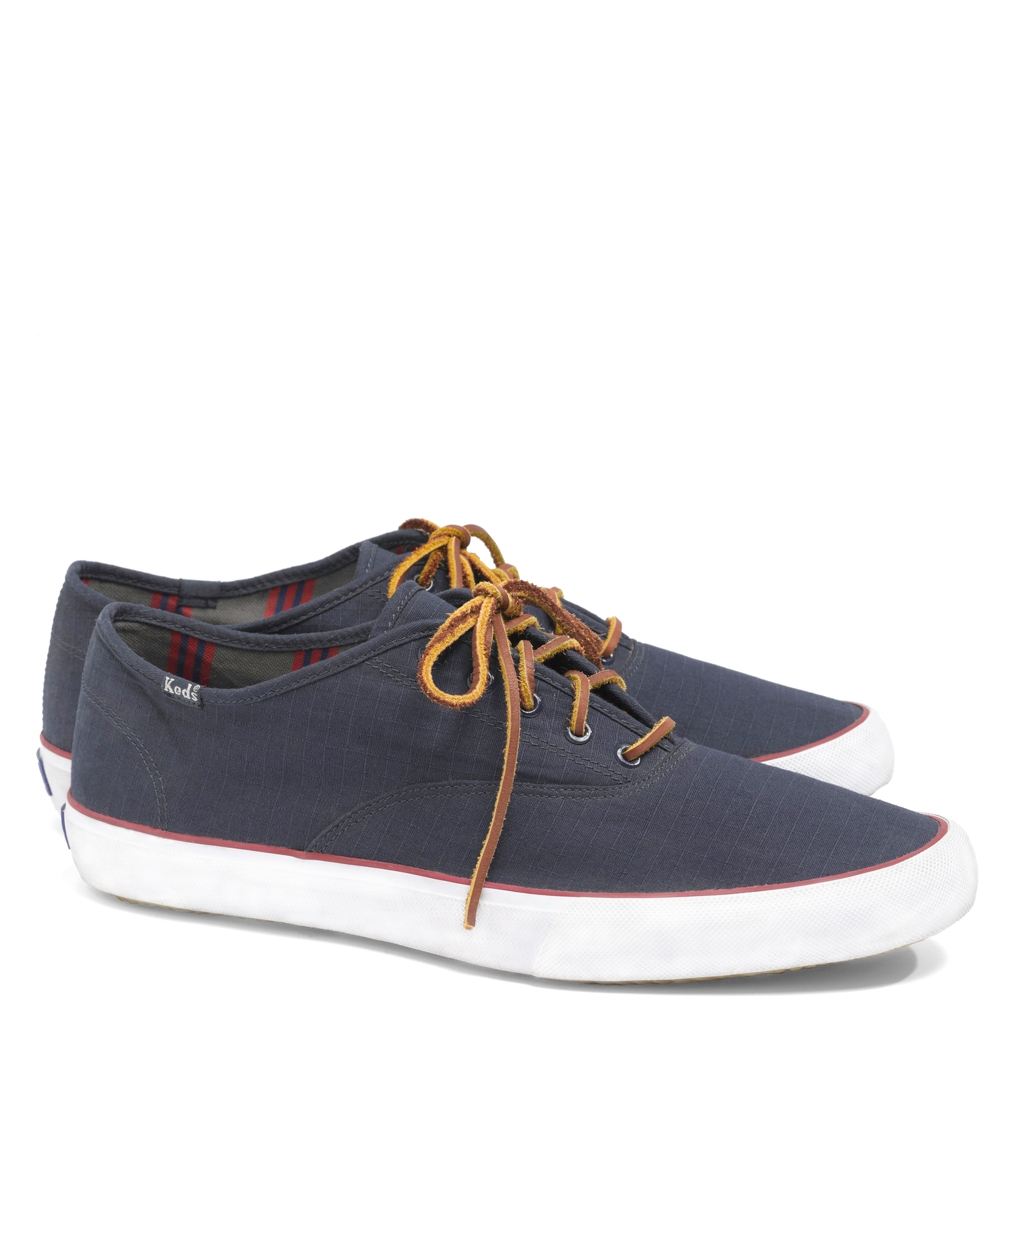 4f9daae9815 Lyst - Brooks Brothers Keds For Brooks Brothers Ripstop Laceup Sneakers in  Blue for Men